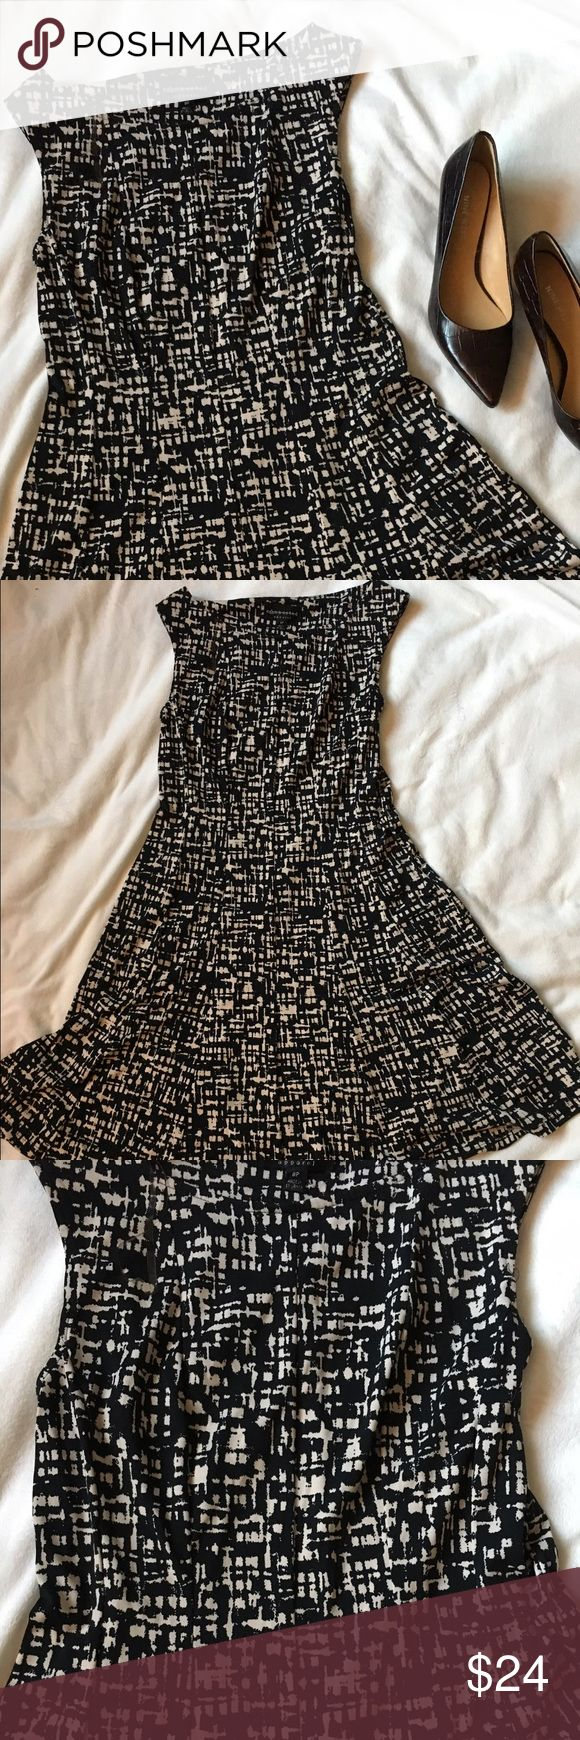 Black and White Print A-line Dress Preowned, form fitting dress with black and white print. The skirt does have a little a-line to it. Measurements are approximately: length 33 inches, chest 14.5 inches. Size 8 petite. No trades.  bundles of 3+ items qualify for 15% discount! Dresses